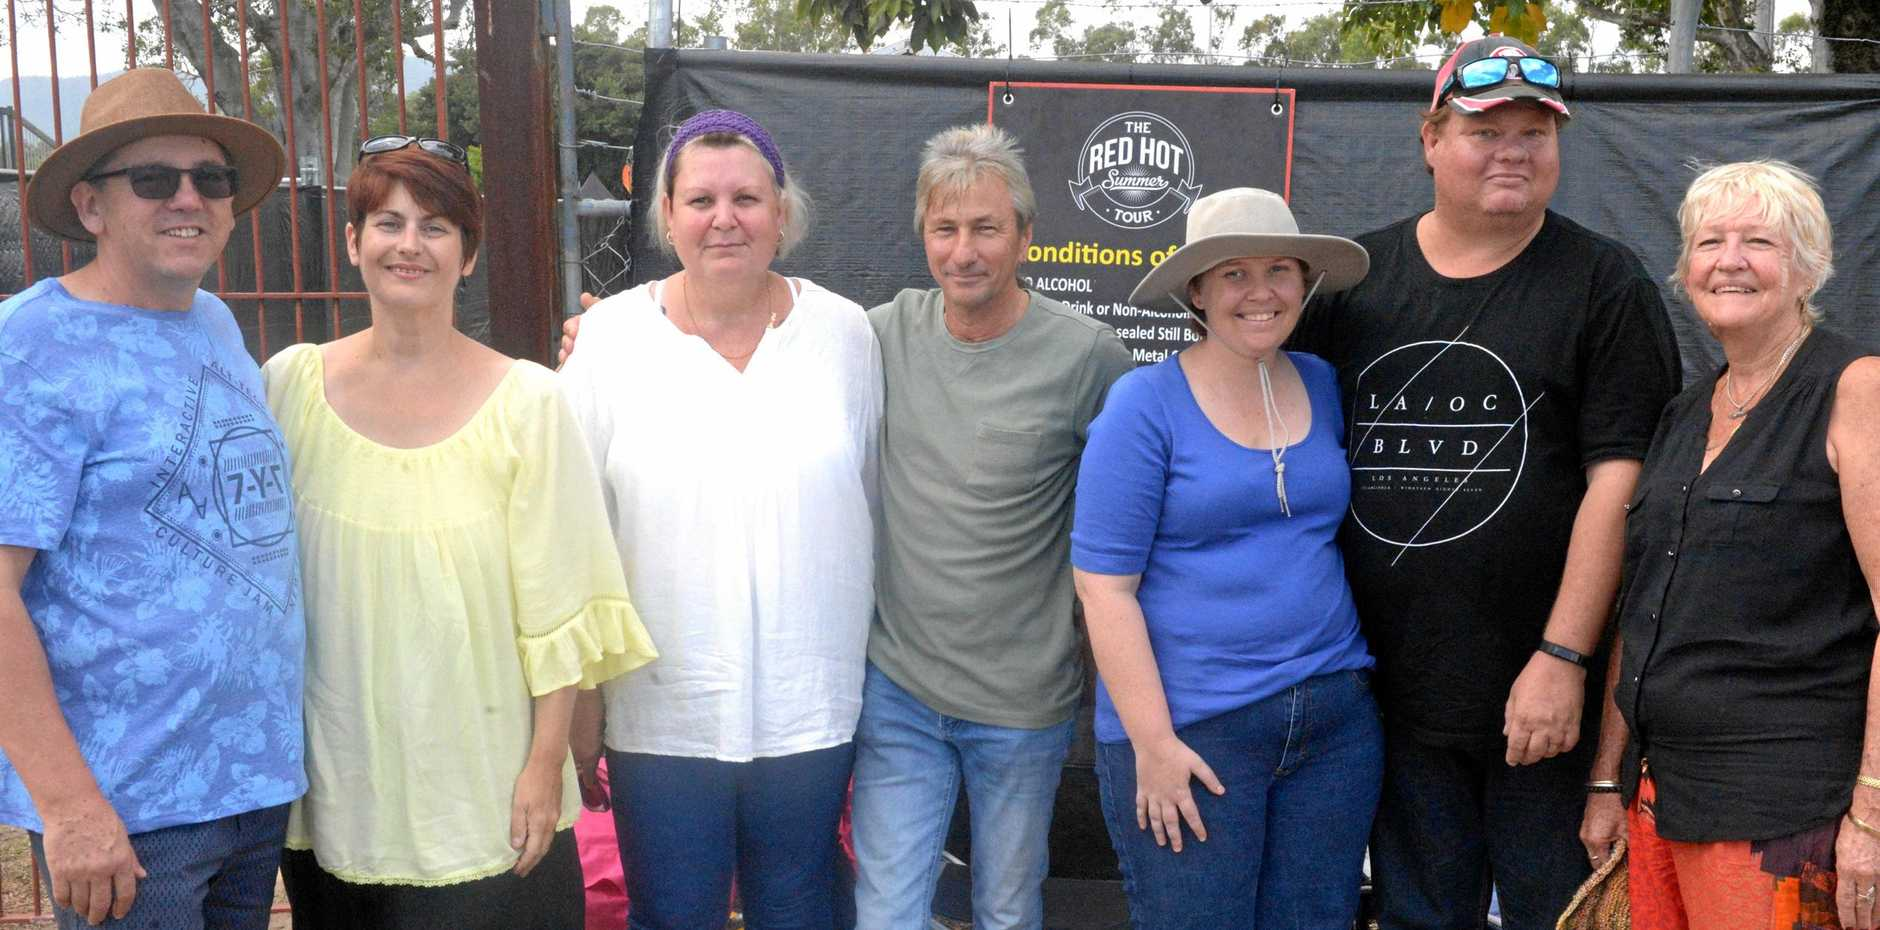 Shaun and Megan Benn of Gladstone; Jacqui and Wayne Frazer of Gracemere; Leonora and James Casey of Eidsvold; and Rhonda Reed wait for this afternoon's Red Hot Summer Tour concert